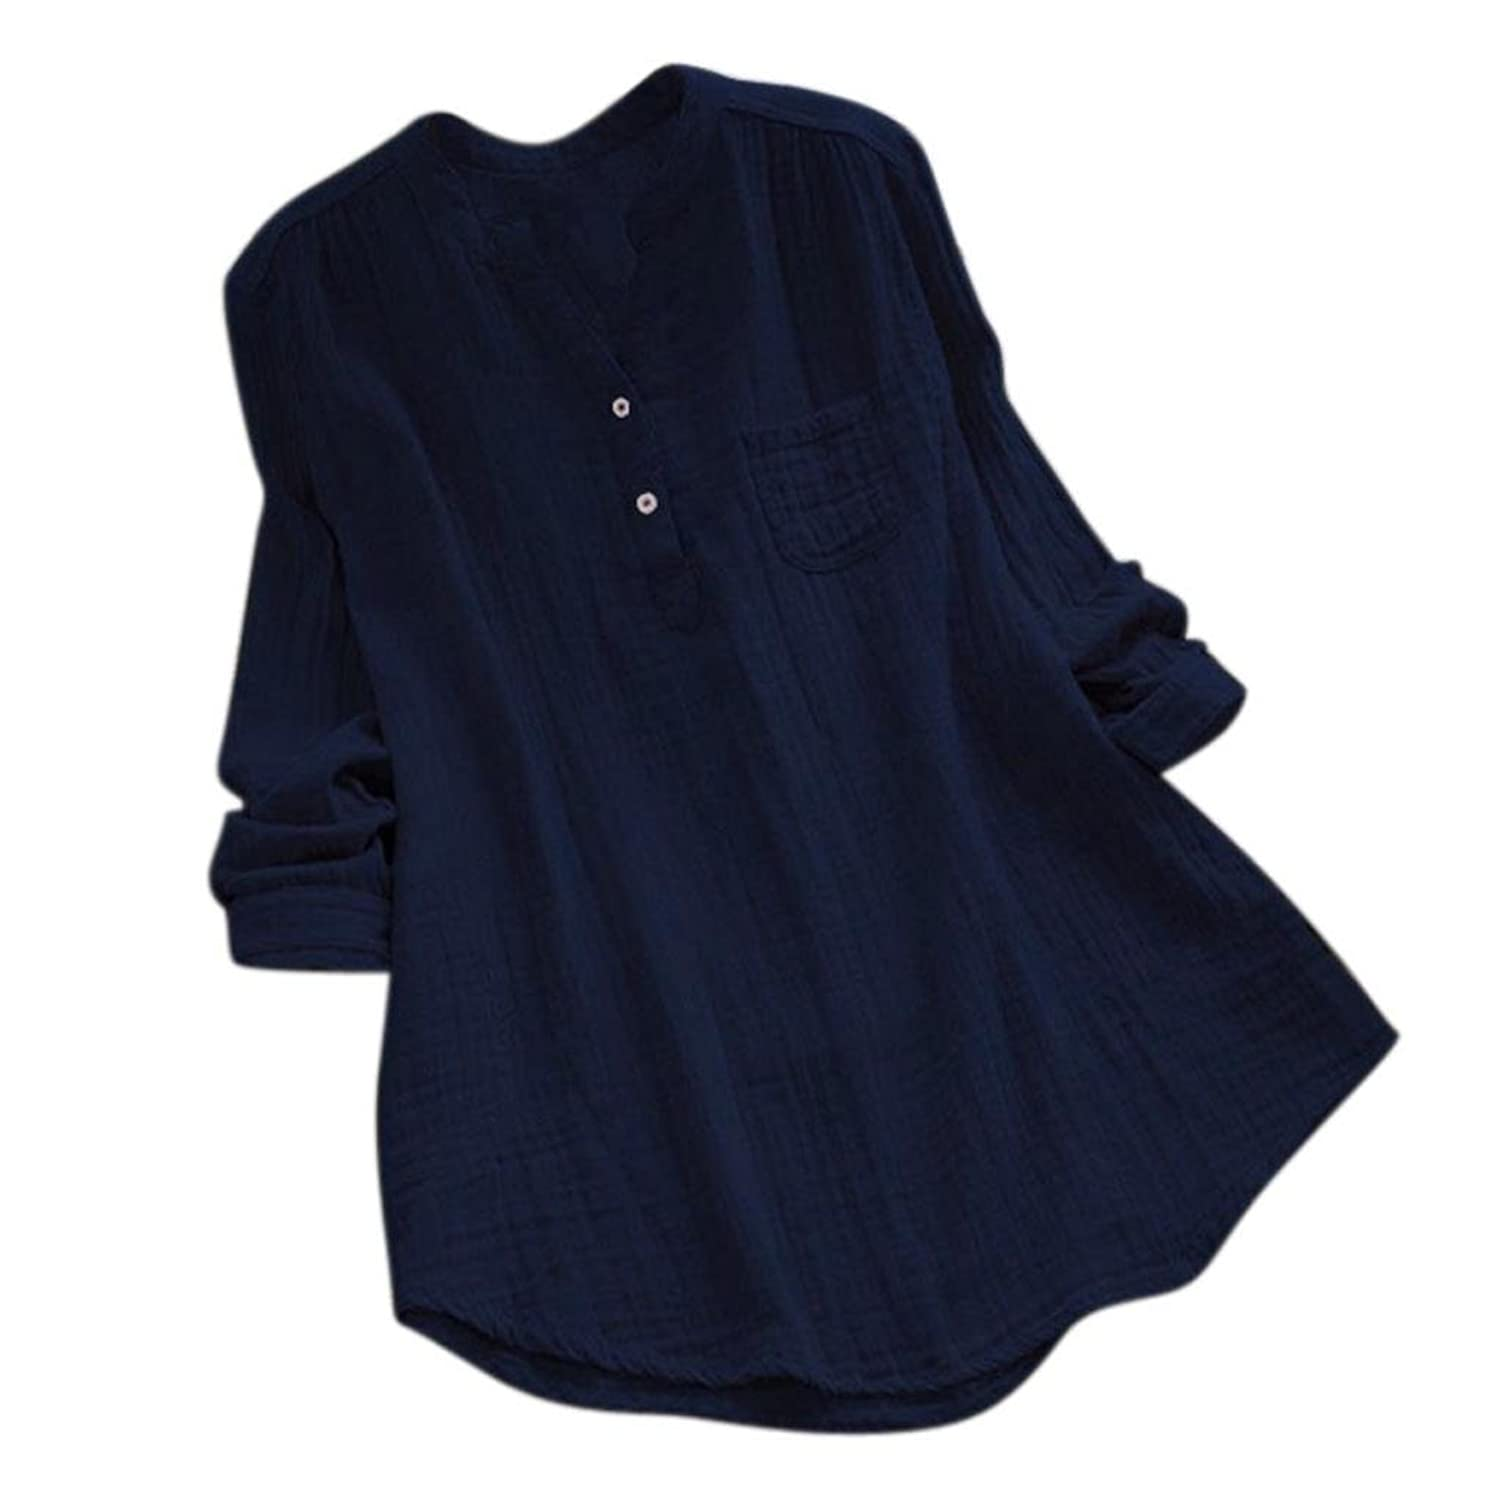 0dafd7a3b3f Gender:Women Occasion:Daily,Casual Material:Cotton Pattern Type: Solid  Style:Casual Sleeve length: Full Collar: Stand Fit:Fits ture to size